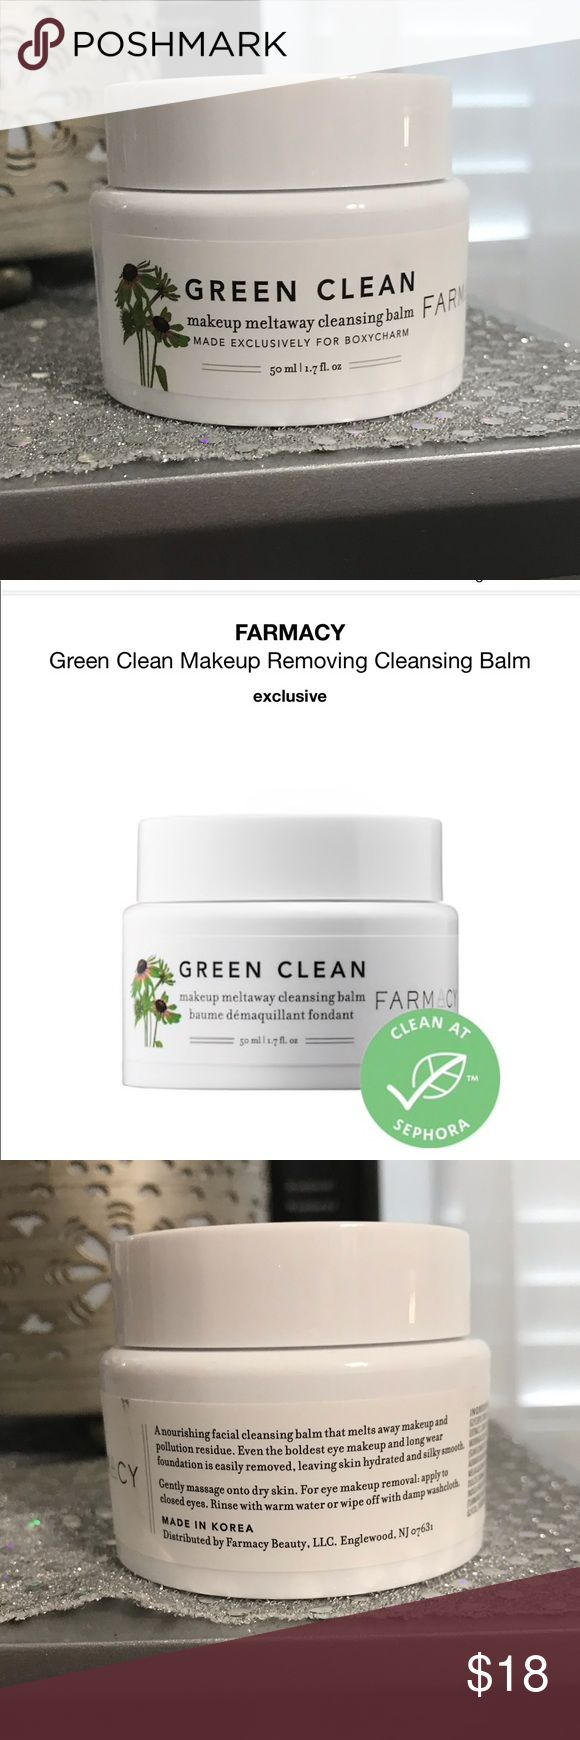 Farmacy Cleansing Balm Farmacy Green Clean Makeup Removing